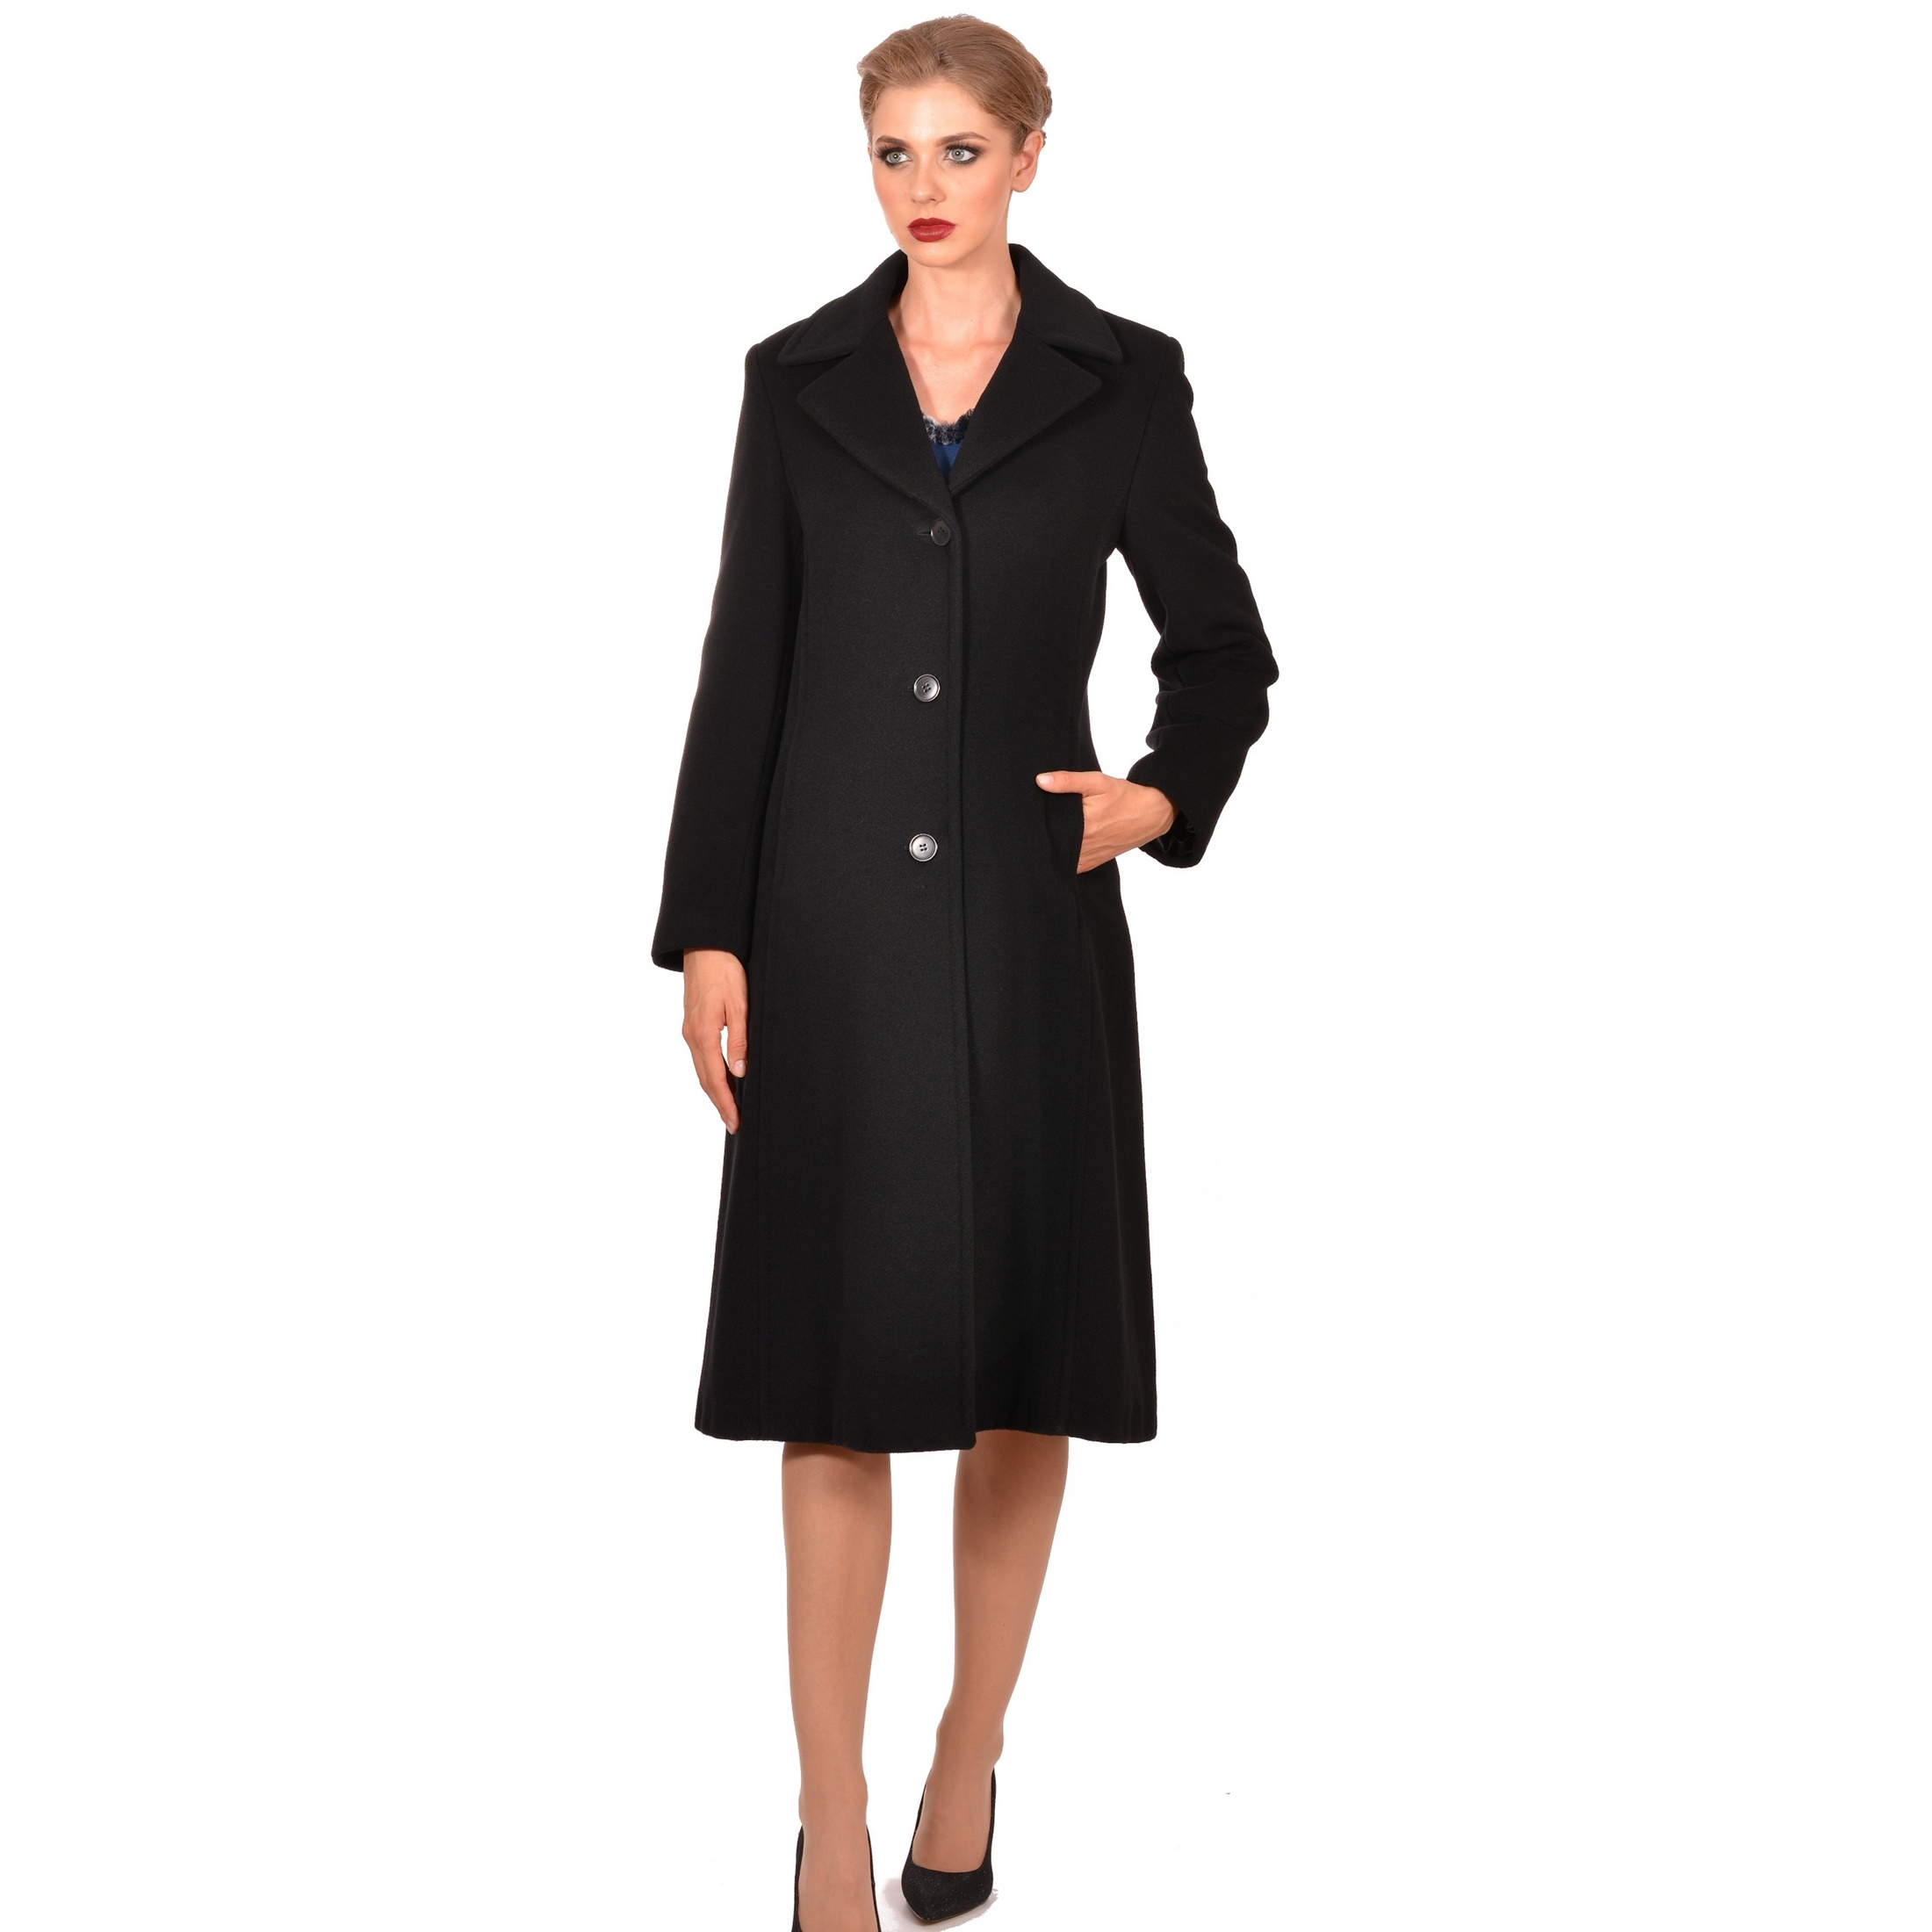 5e5d4f621e maria fashion wear for women - marija modna odjeća za žene - high quality  fashion and corporate clothing - web trgovina. Women's classic long coat